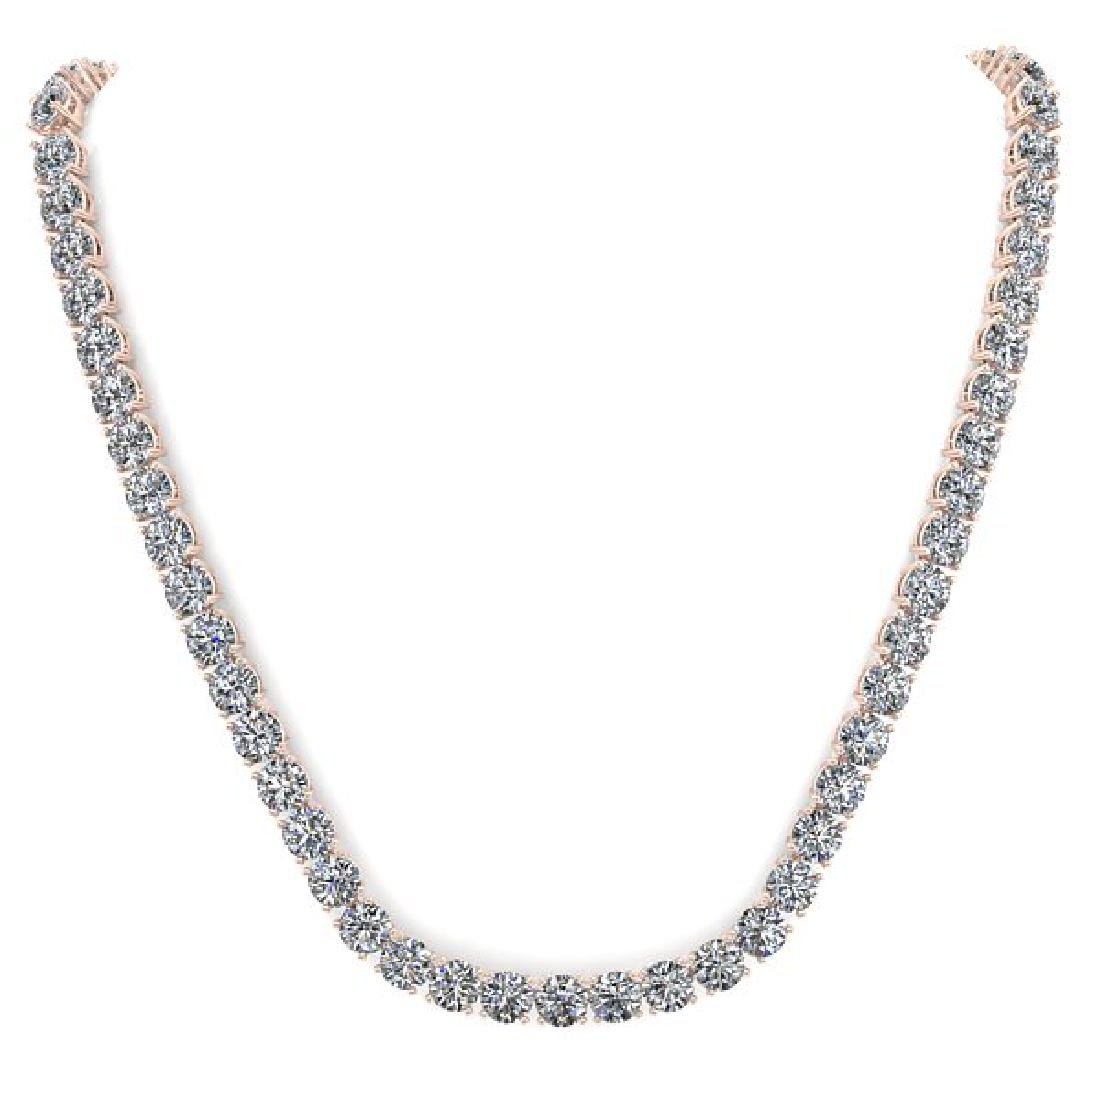 38 CTW Certified SI Diamond Necklace 18K Rose Gold - 3